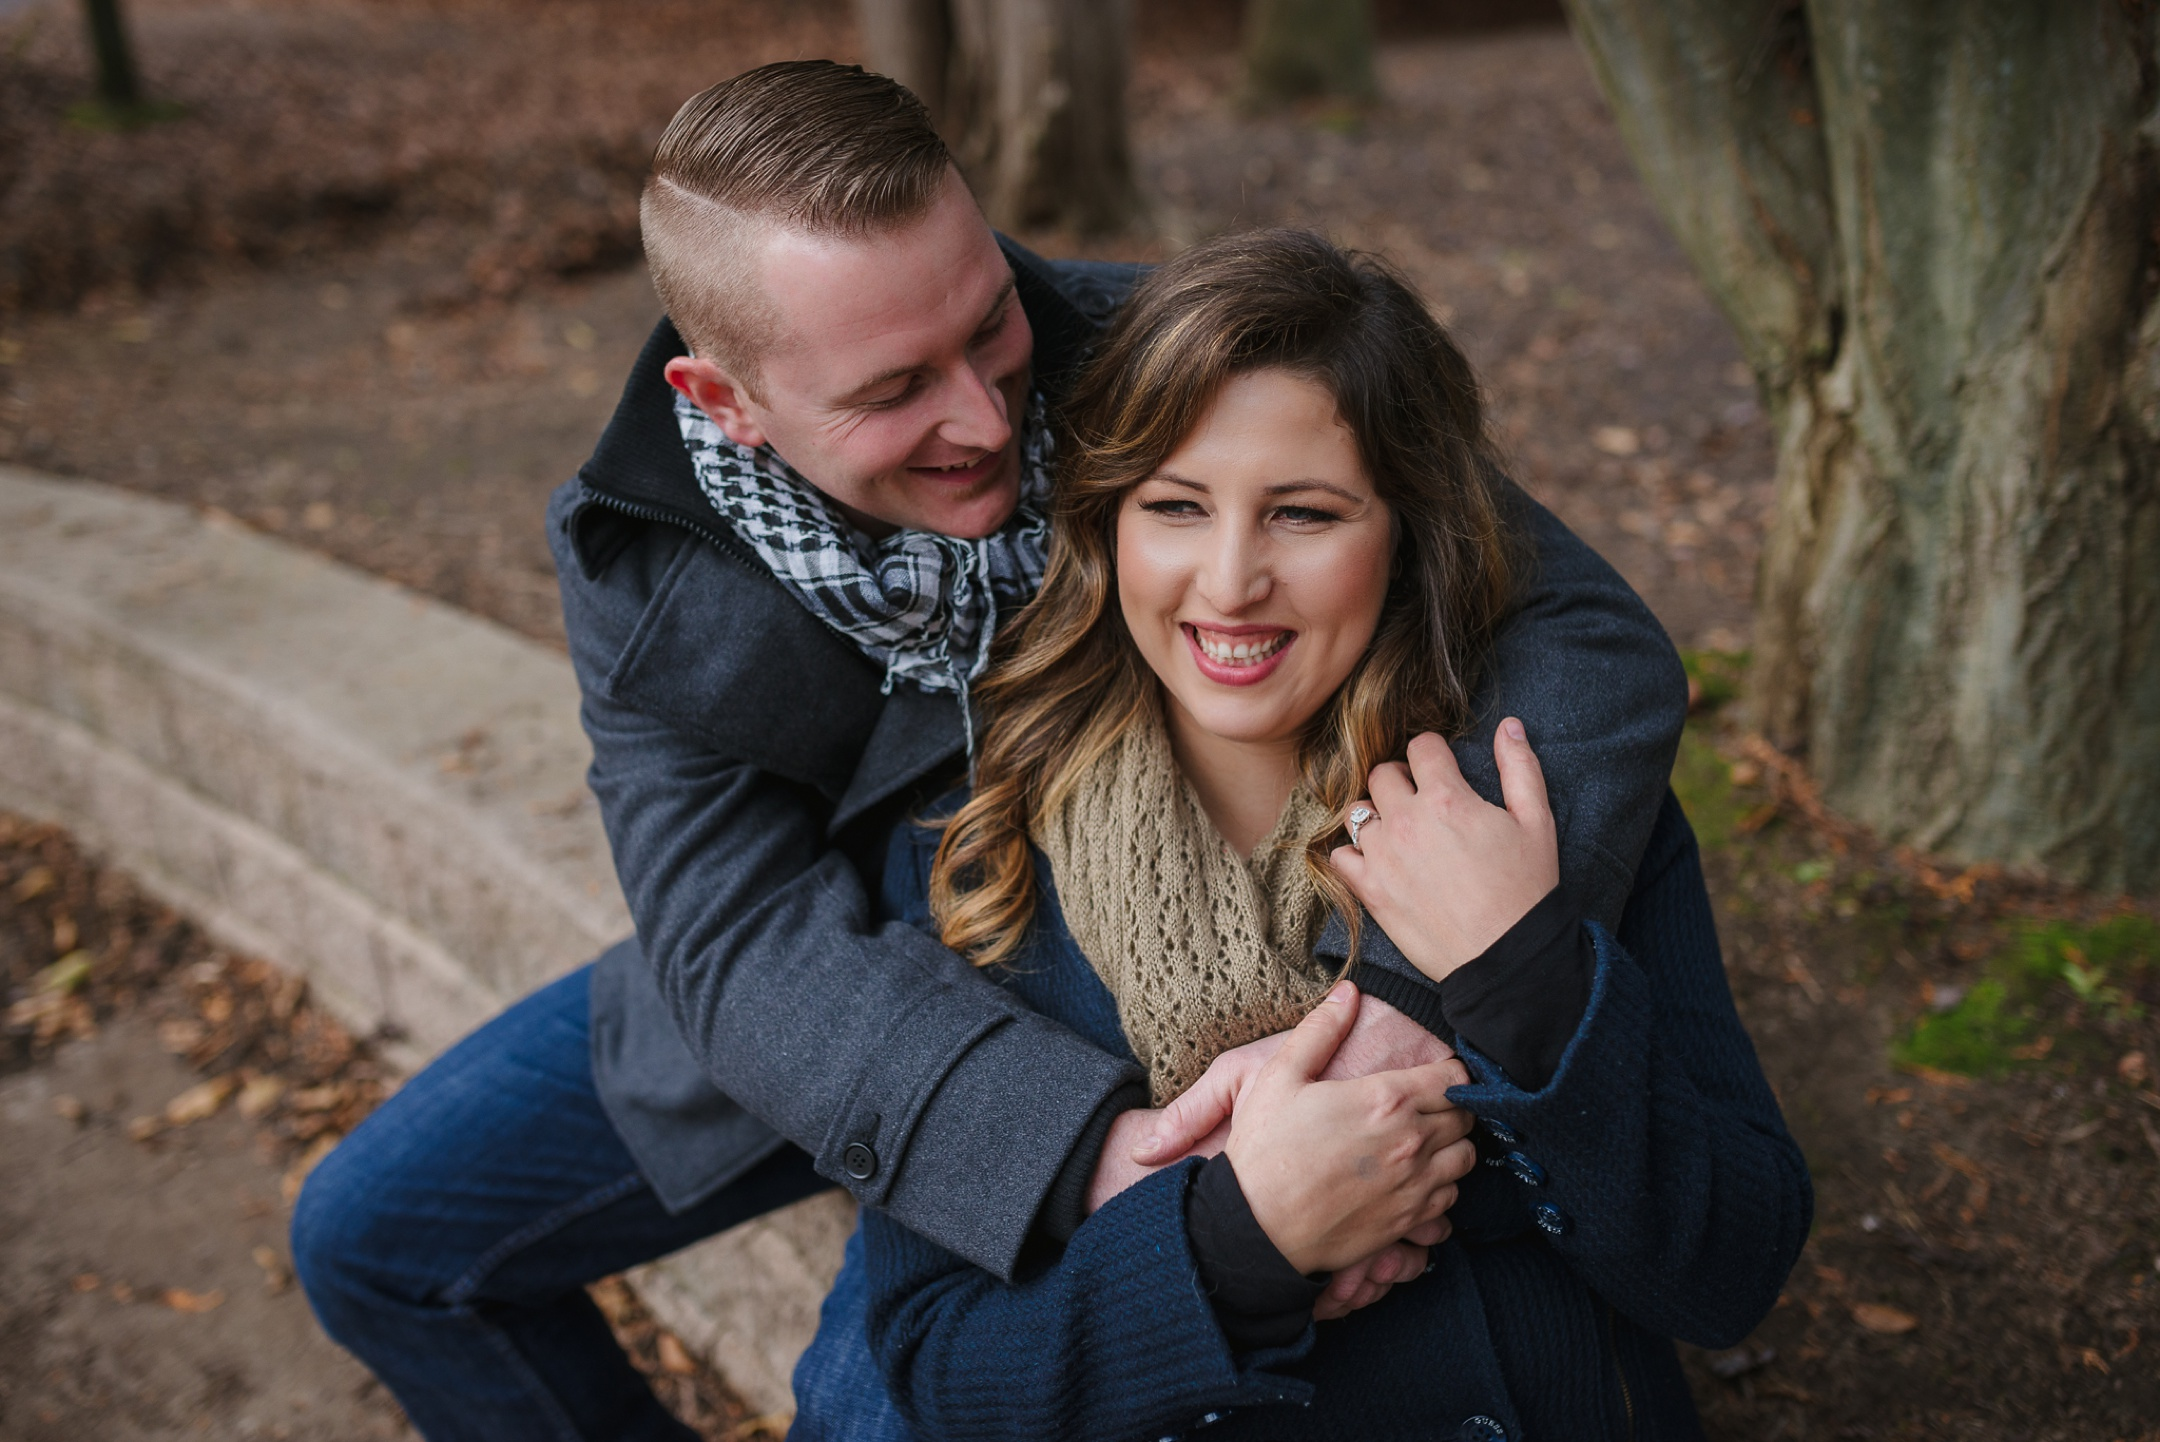 Durham Region, Whitby Engagement Session in the woods, couple sitting together